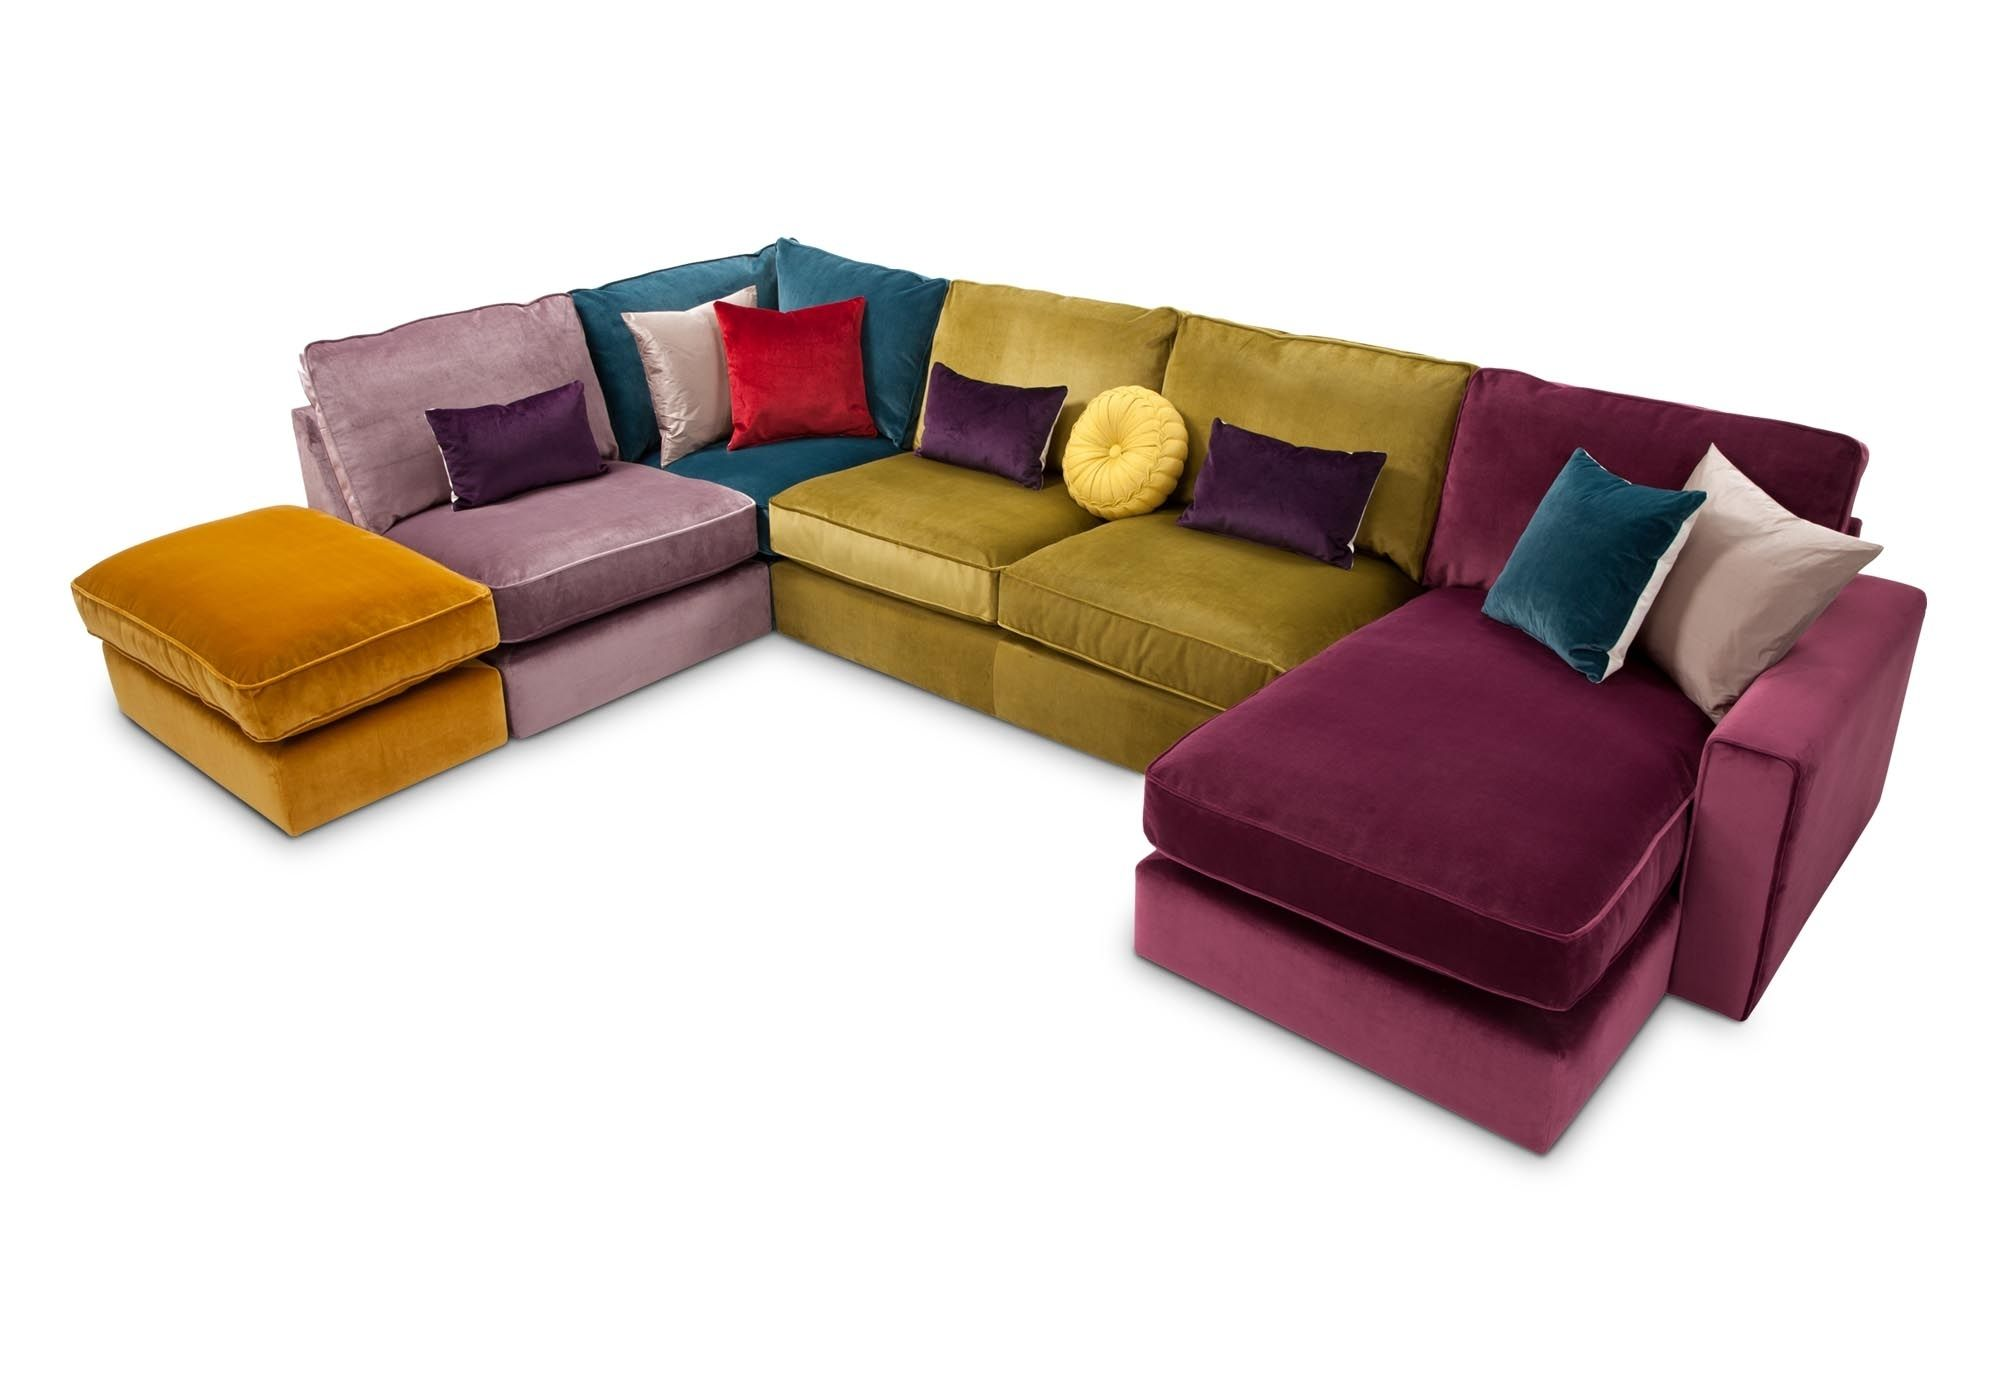 Harlequin Sofa For The Home Corner Chaise